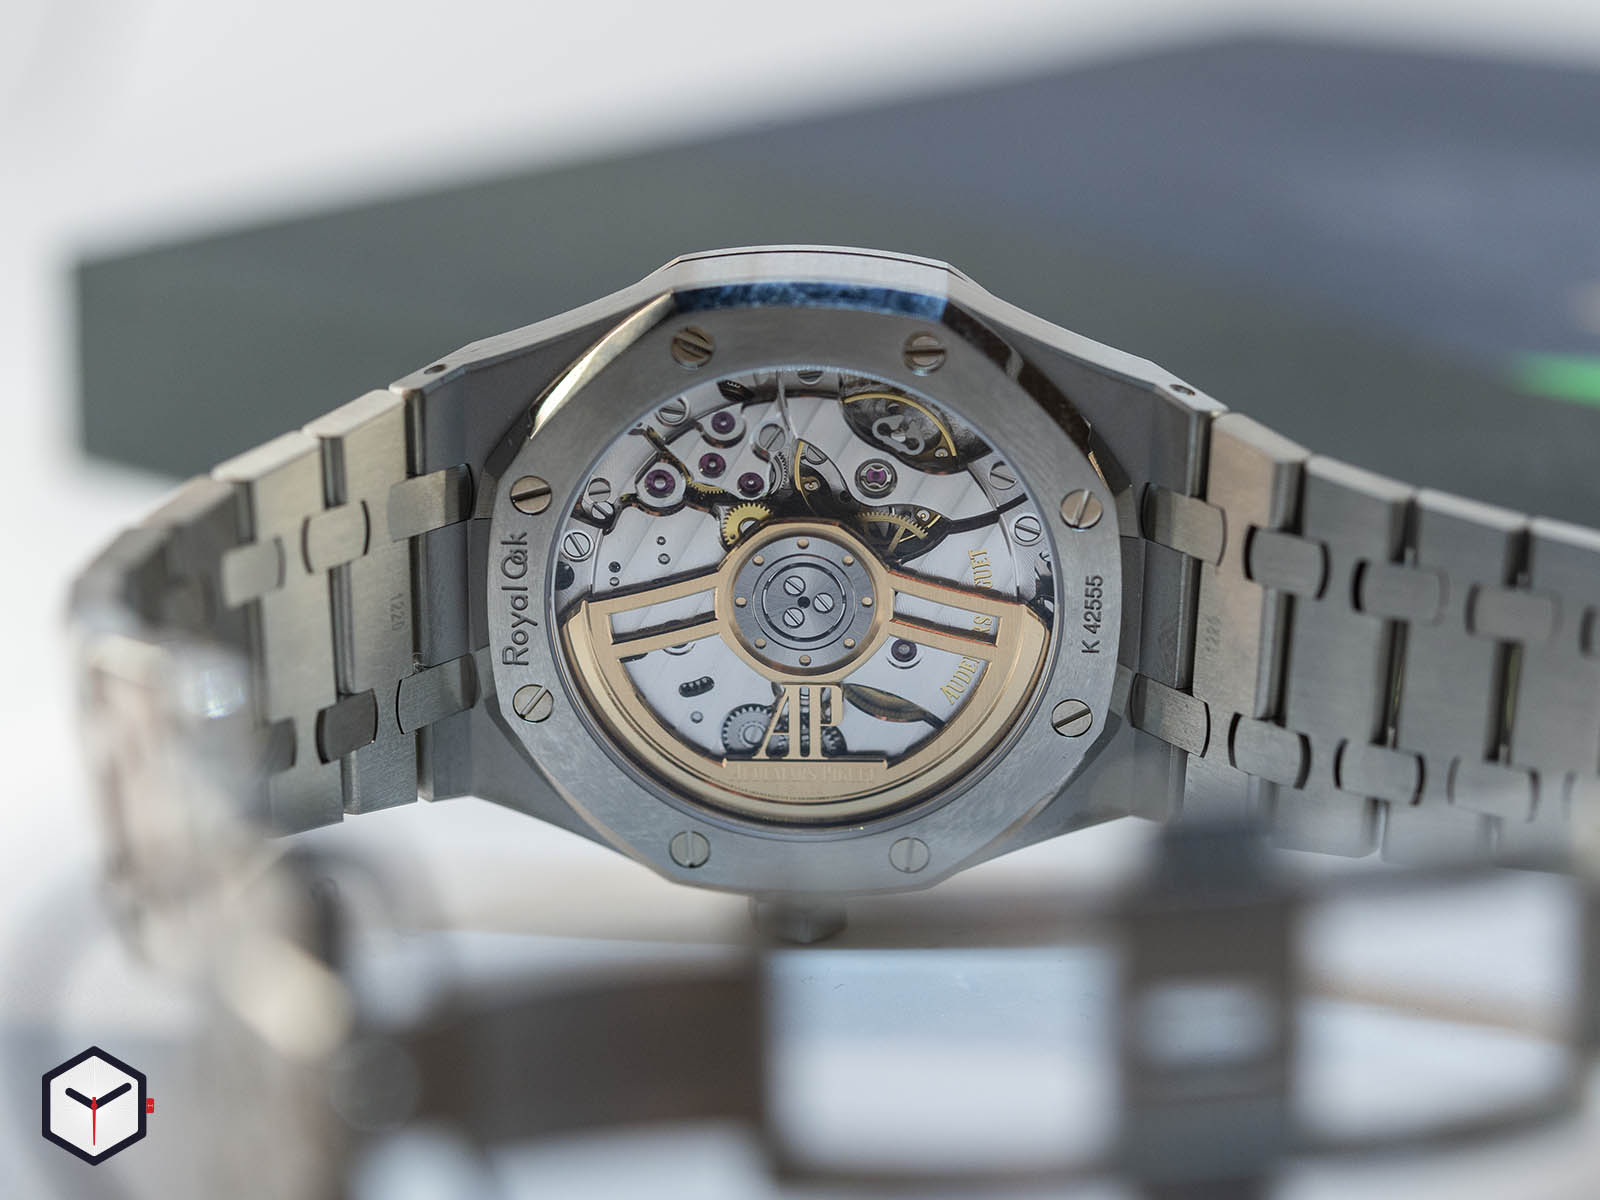 15500-audemars-piguet-royal-oak-sihh-2019-4.jpg